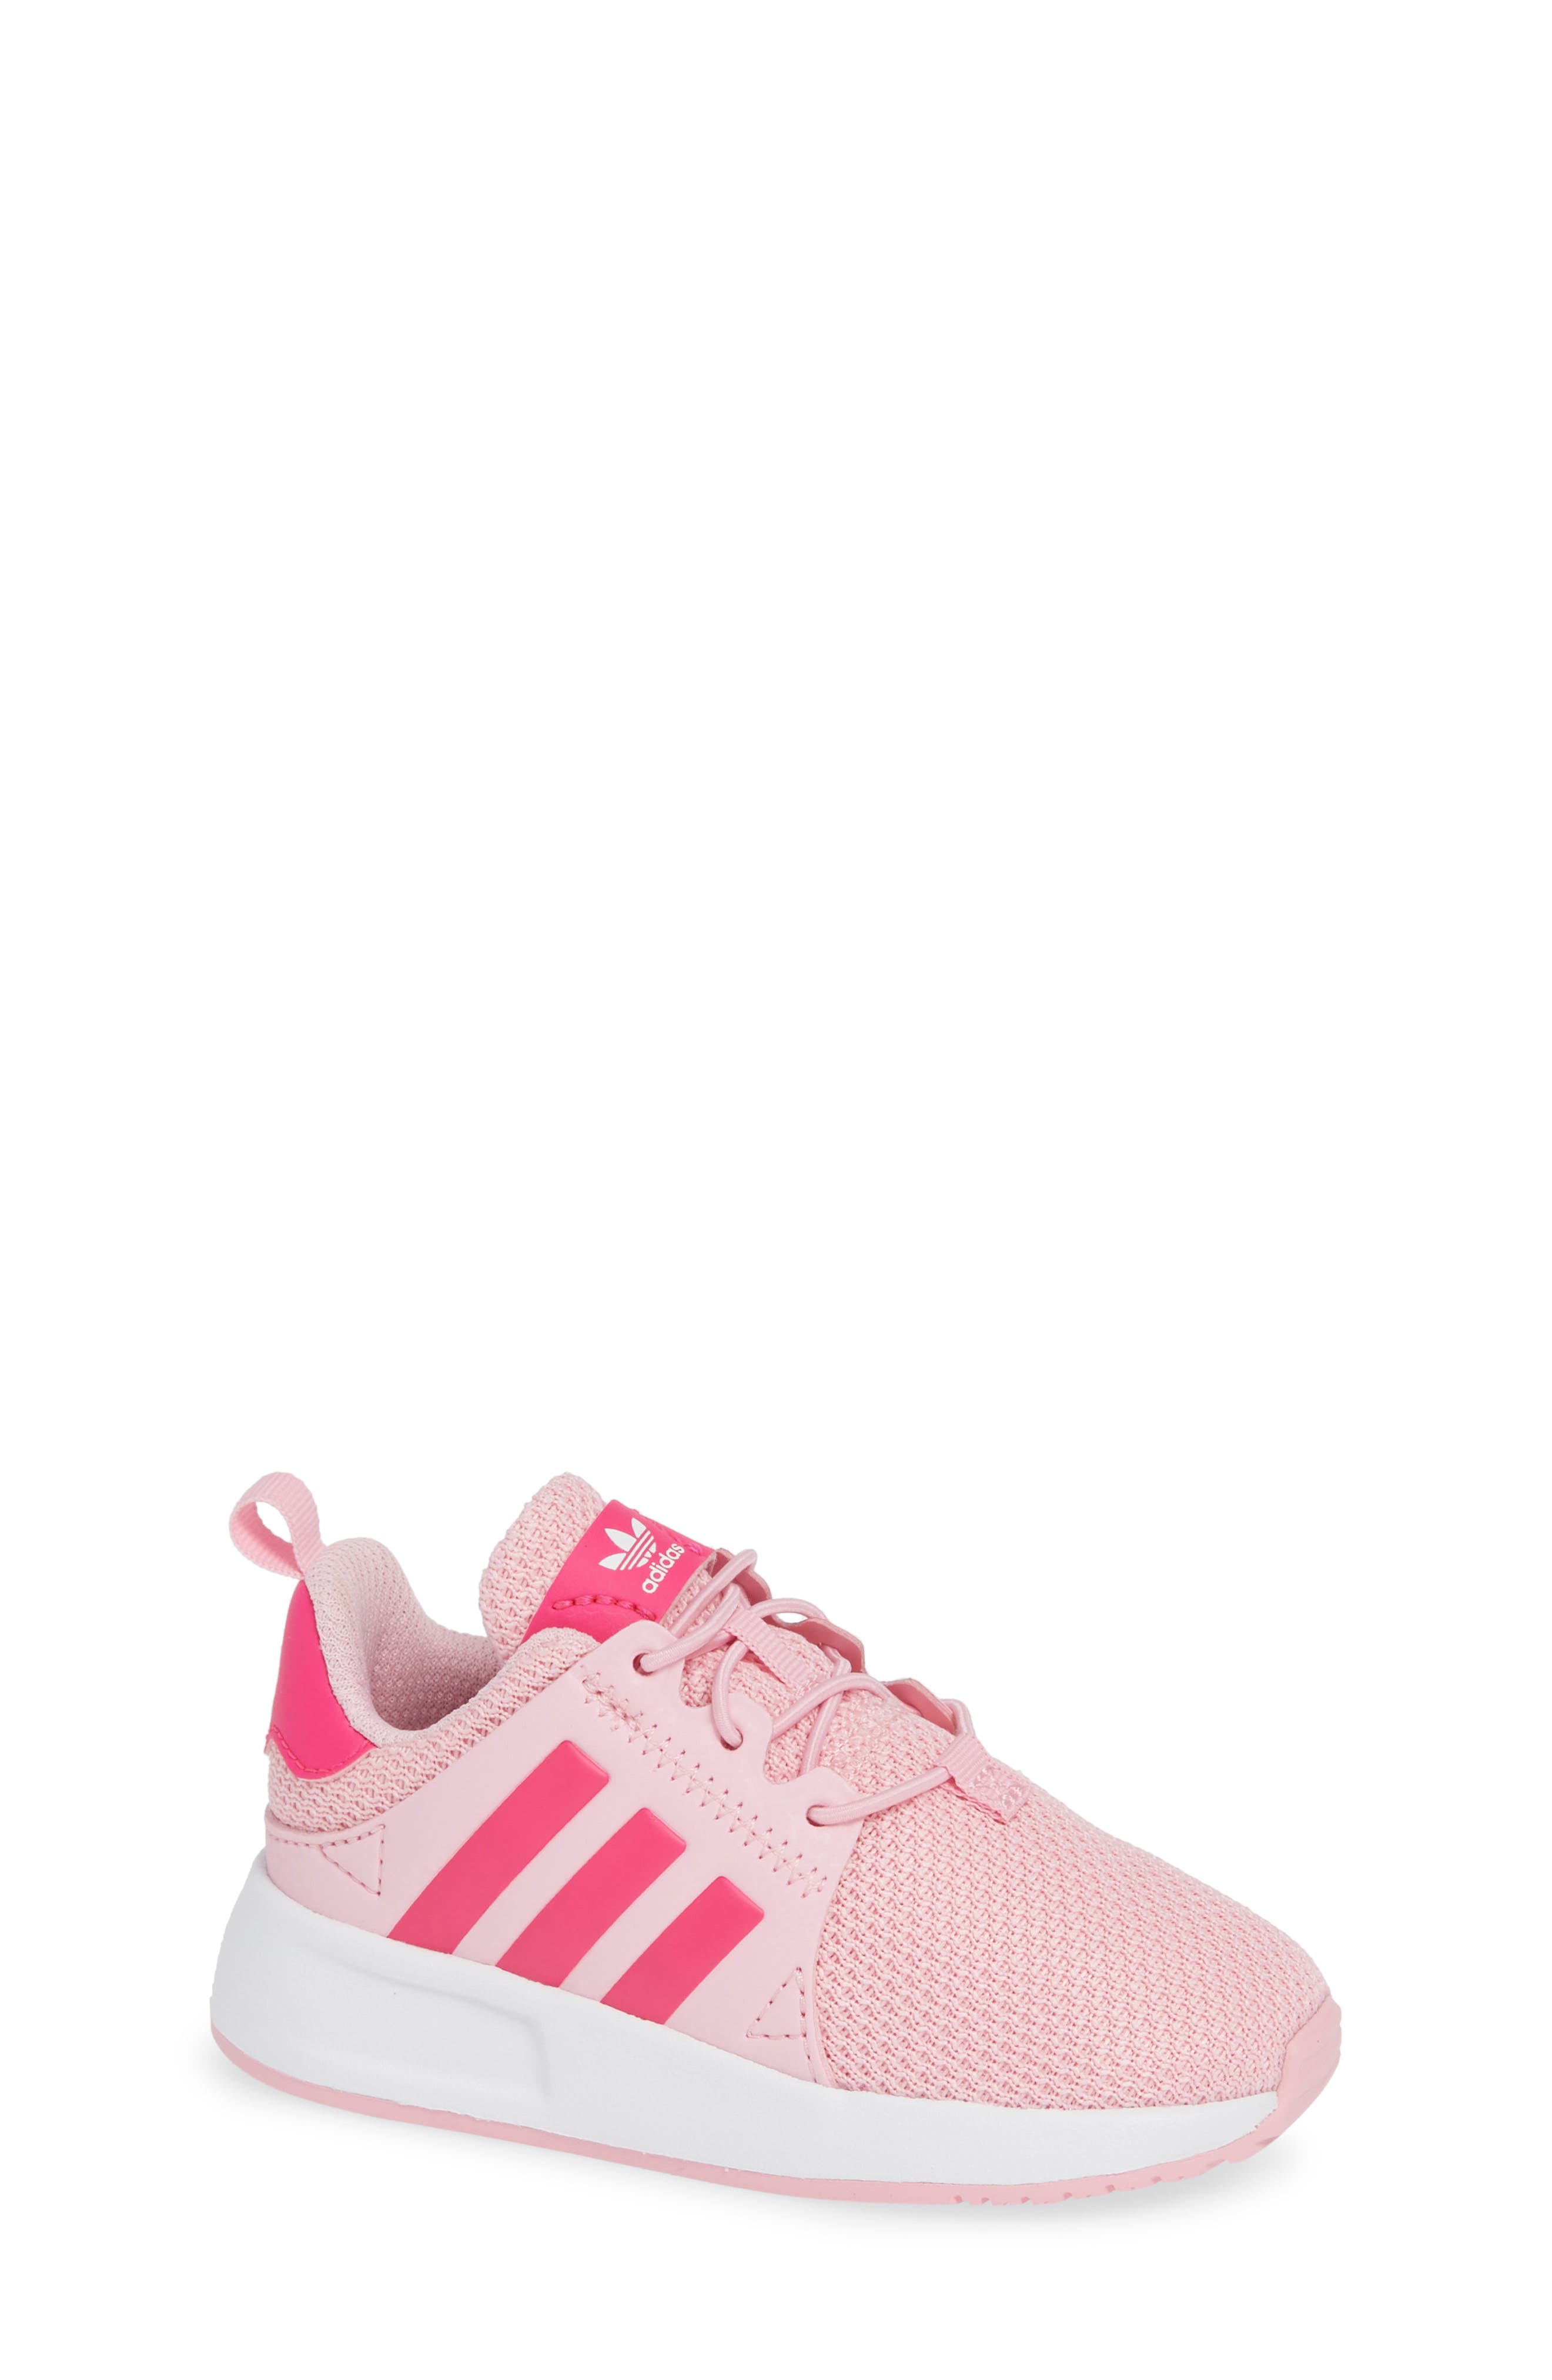 ADIDAS X_PLR Sneaker, Main, color, TRUE PINK/ SHOCK PINK/ WHITE